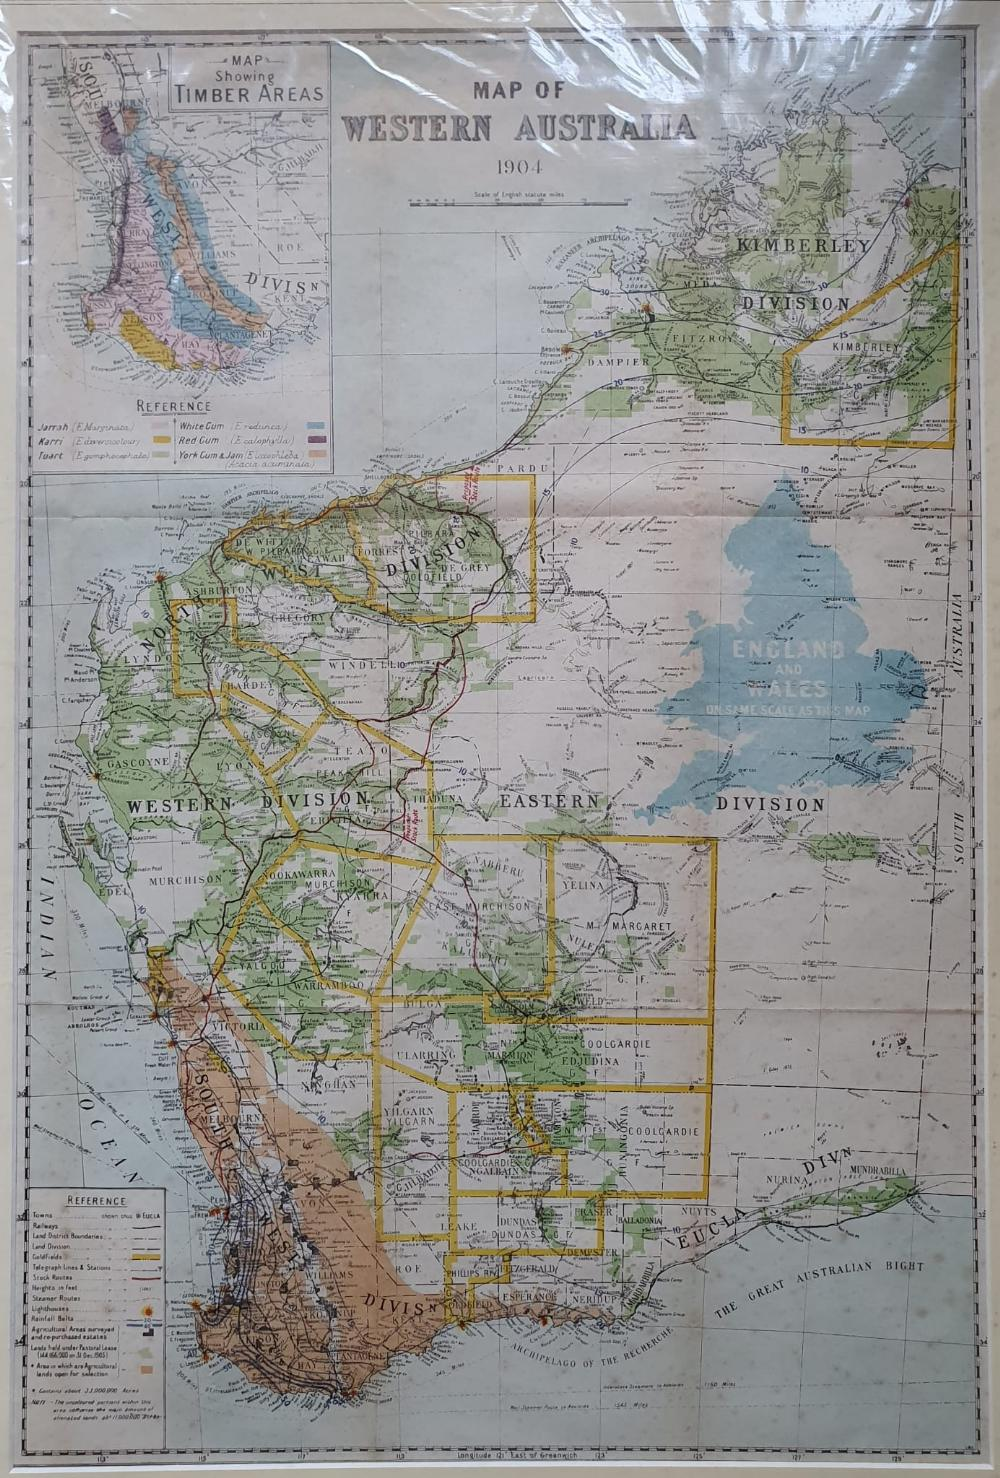 """An early 20thC map of Western Australia, dated '1904', 21.5"""" x 14.4"""" and a smaller 1914 map of WA by - Image 5 of 6"""